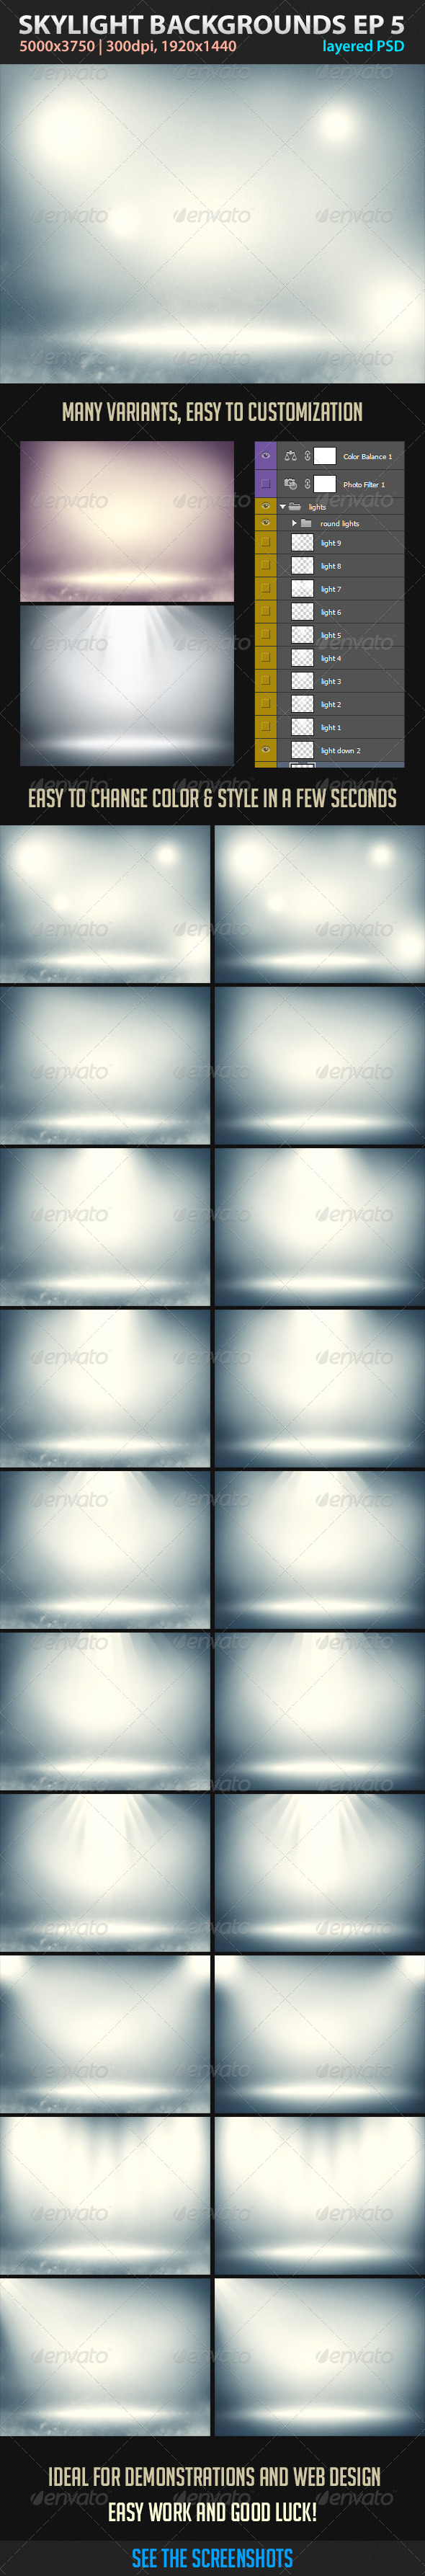 Skylight Backgrounds EP 5 - Abstract Backgrounds